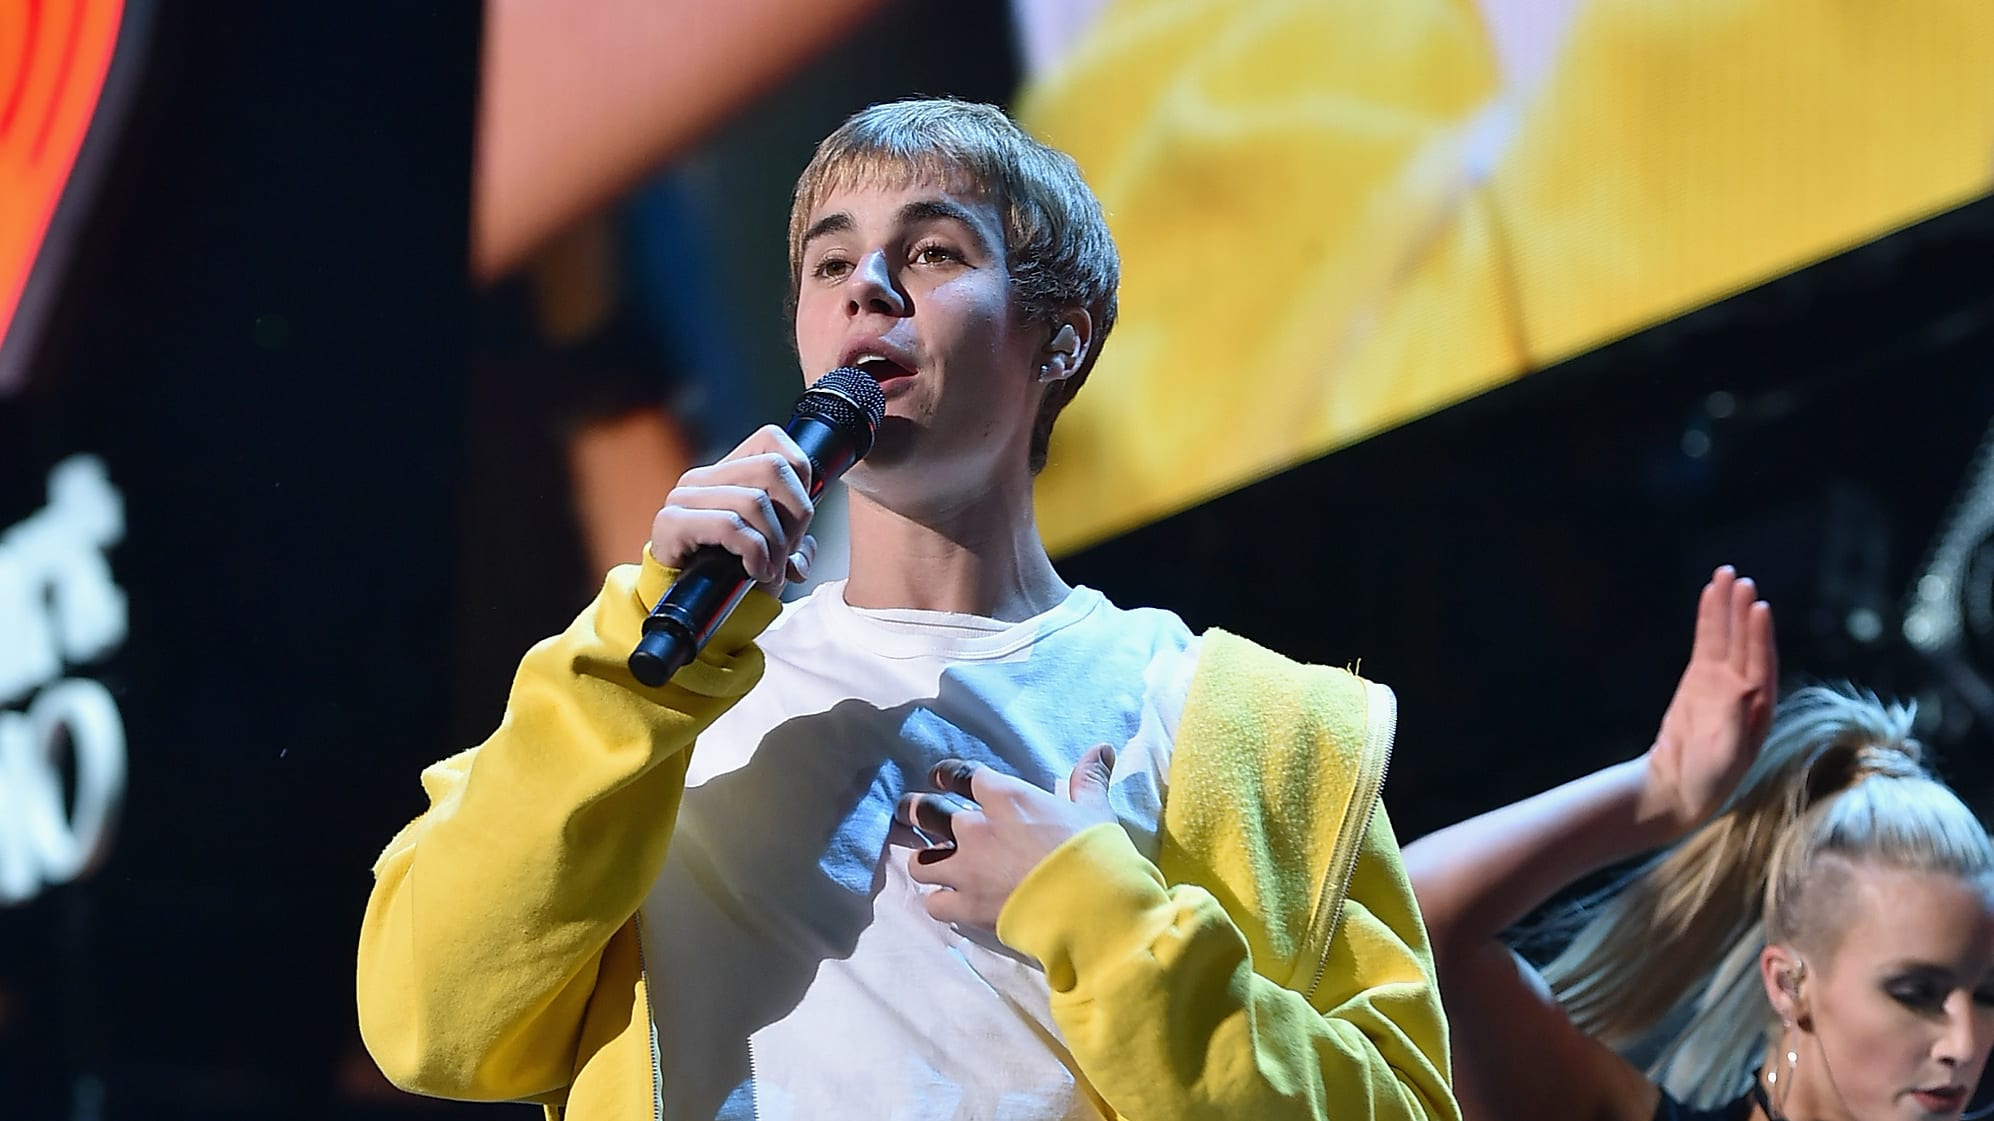 Justin Bieber Reportedly Returning to Music With Lil Dicky Collaboration